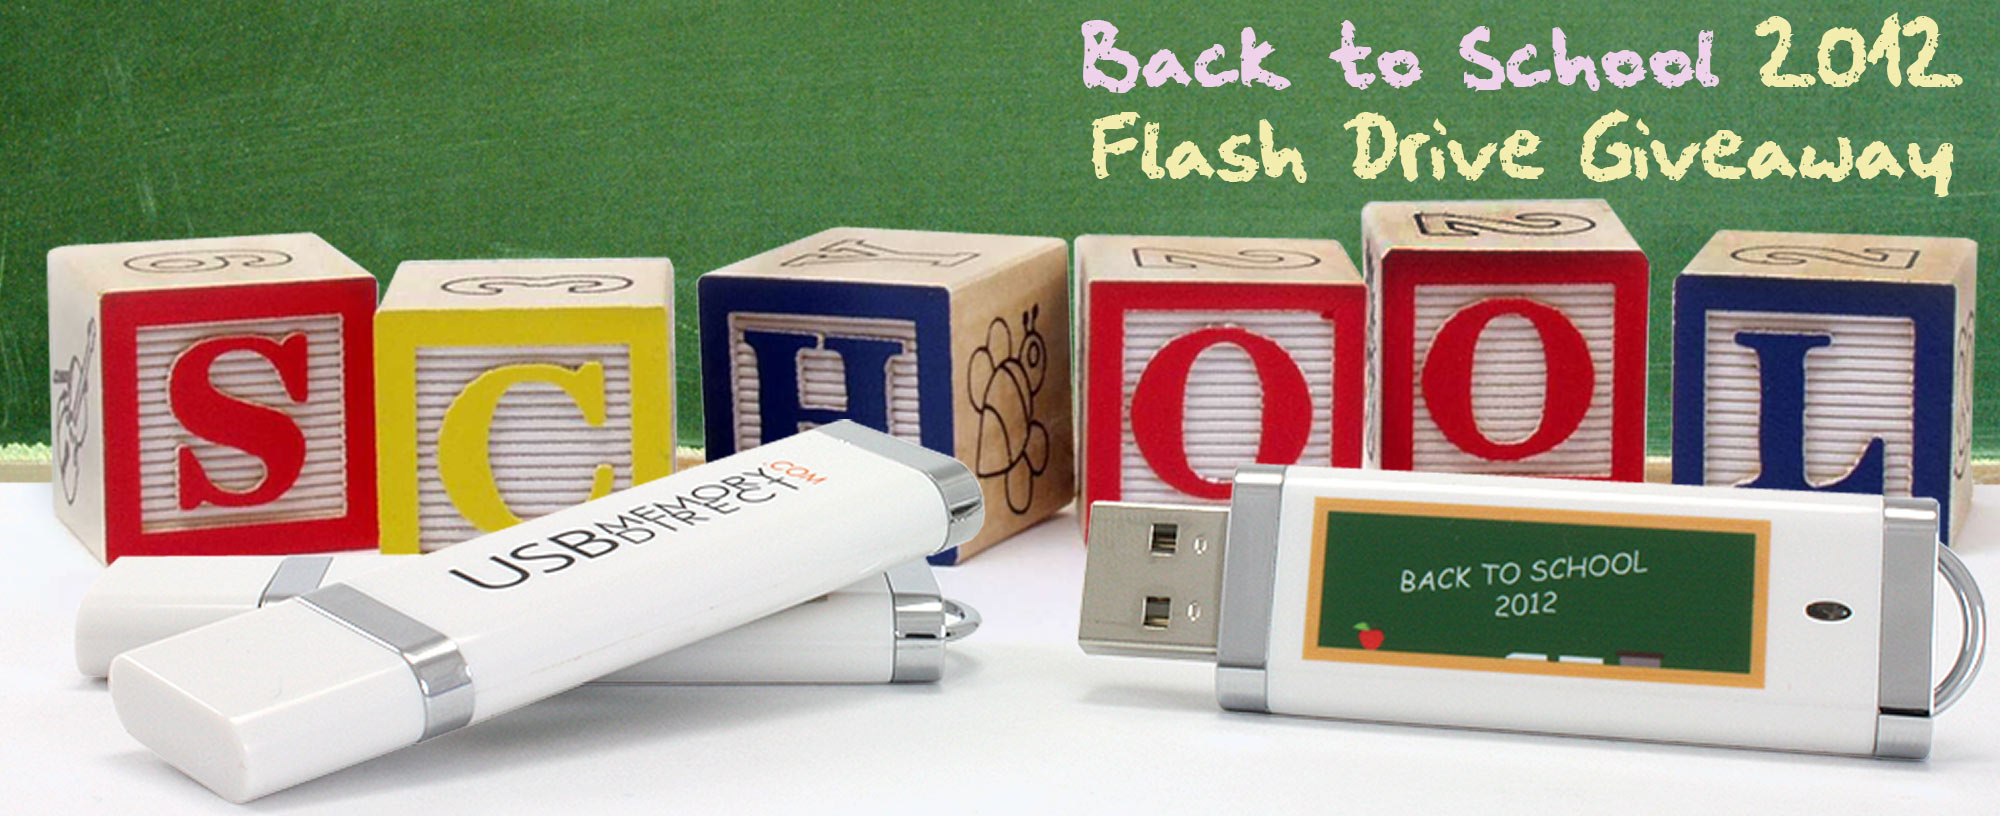 usb memory direct school giveaway